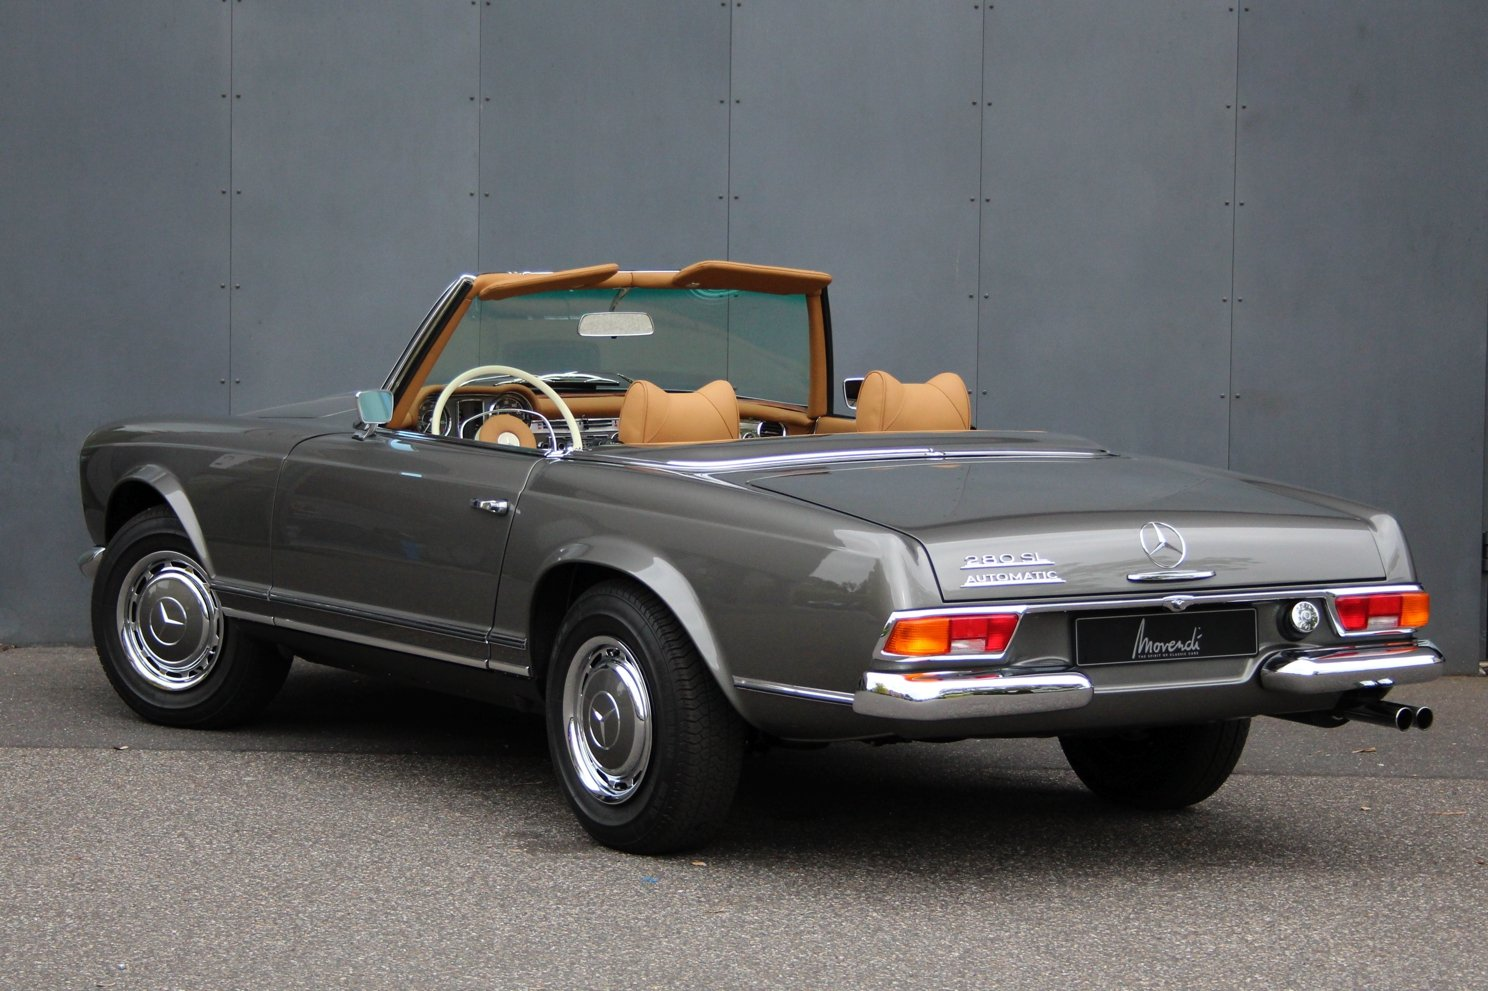 1971 Mercedes-Benz 280 SL Pagoda LHD For Sale (picture 2 of 6)